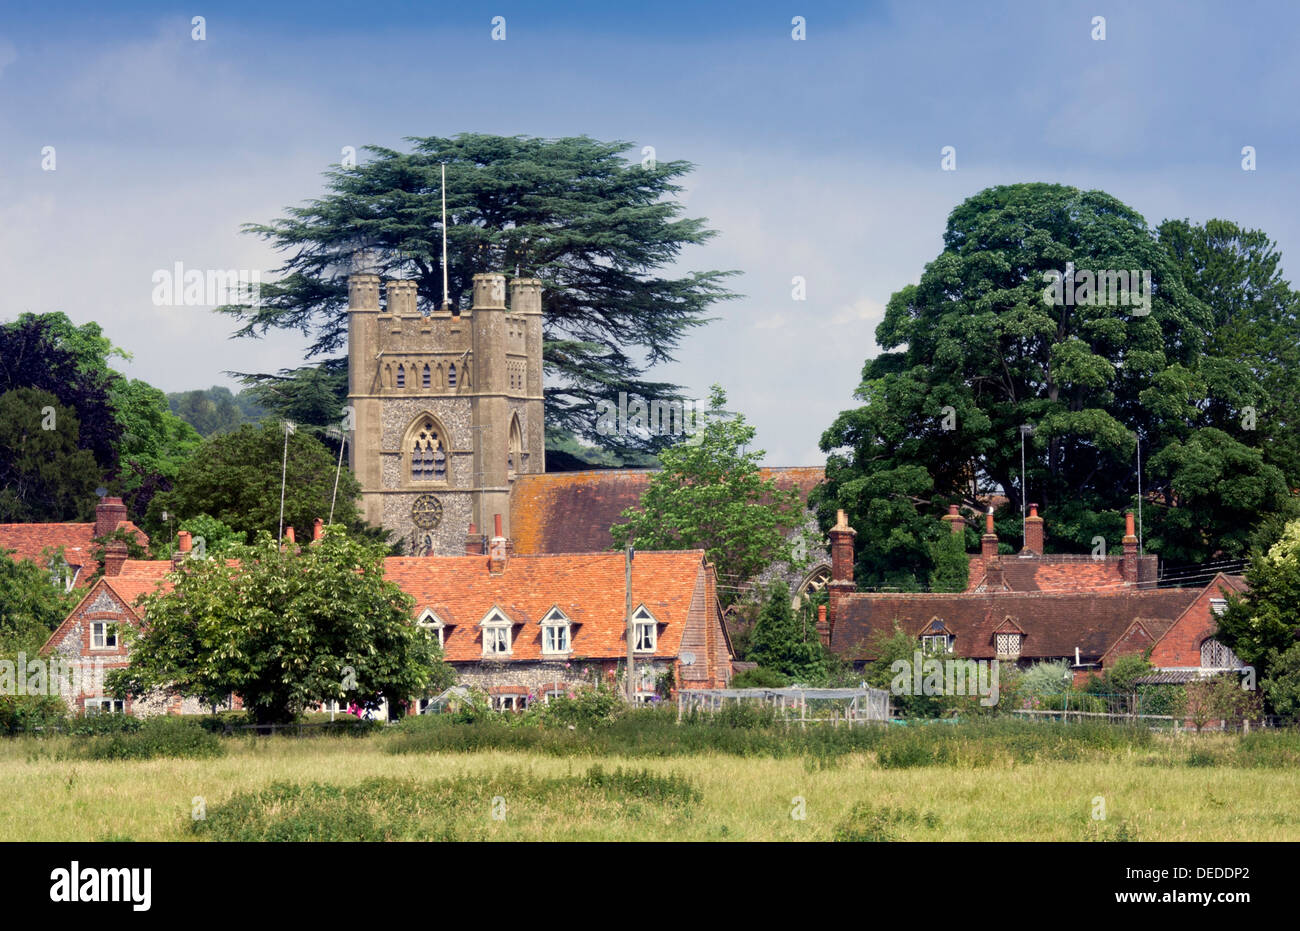 View of Hambleden, a Village in Buckinghamshire - Stock Image